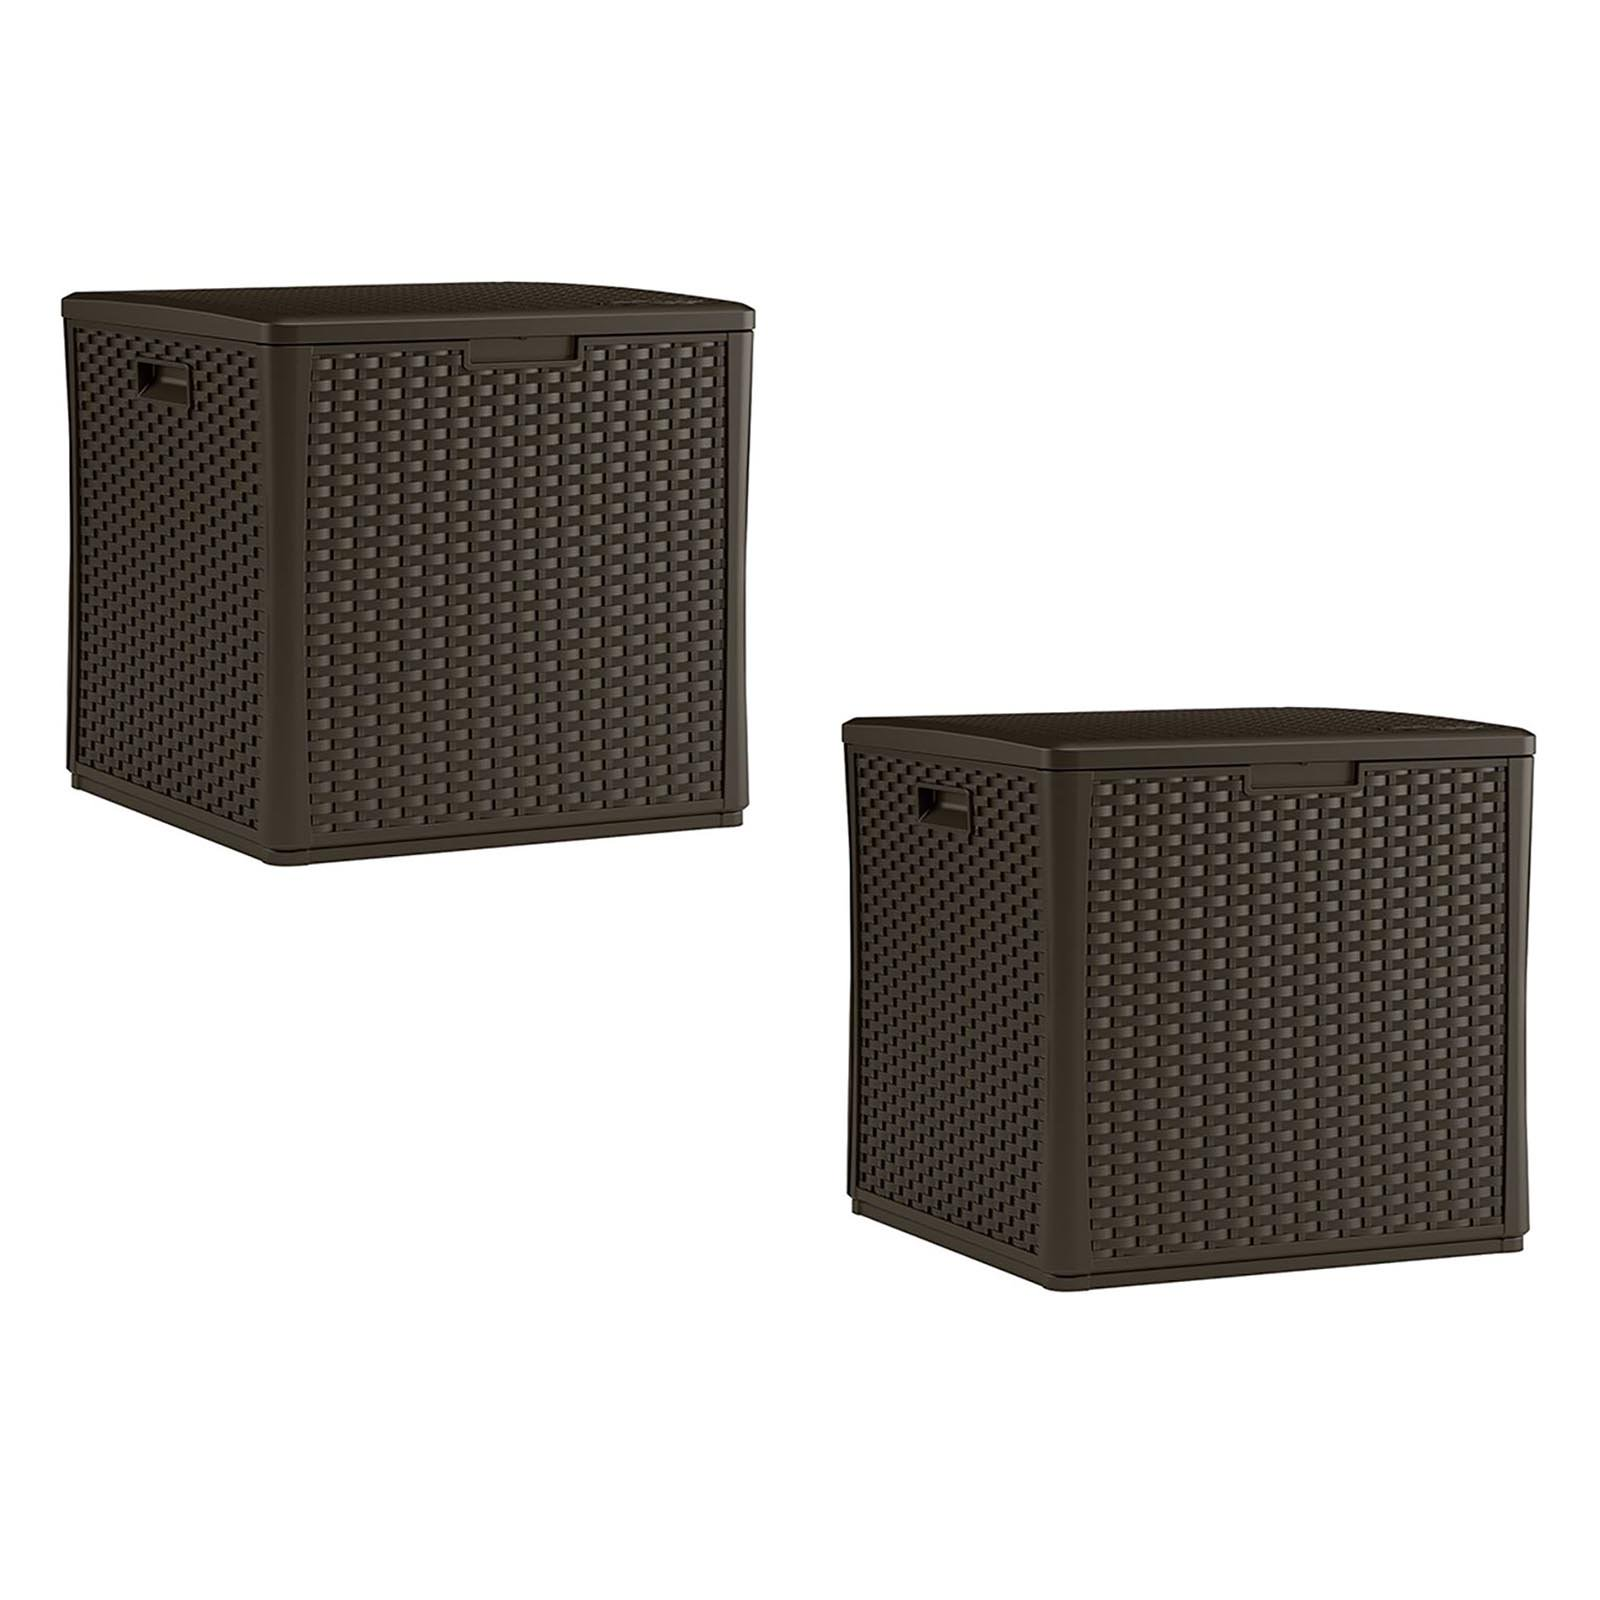 Suncast 60 Gallon Resin Wicker Design Cube Shape Storage Deck Box, Java, 2 Pack by Suncast